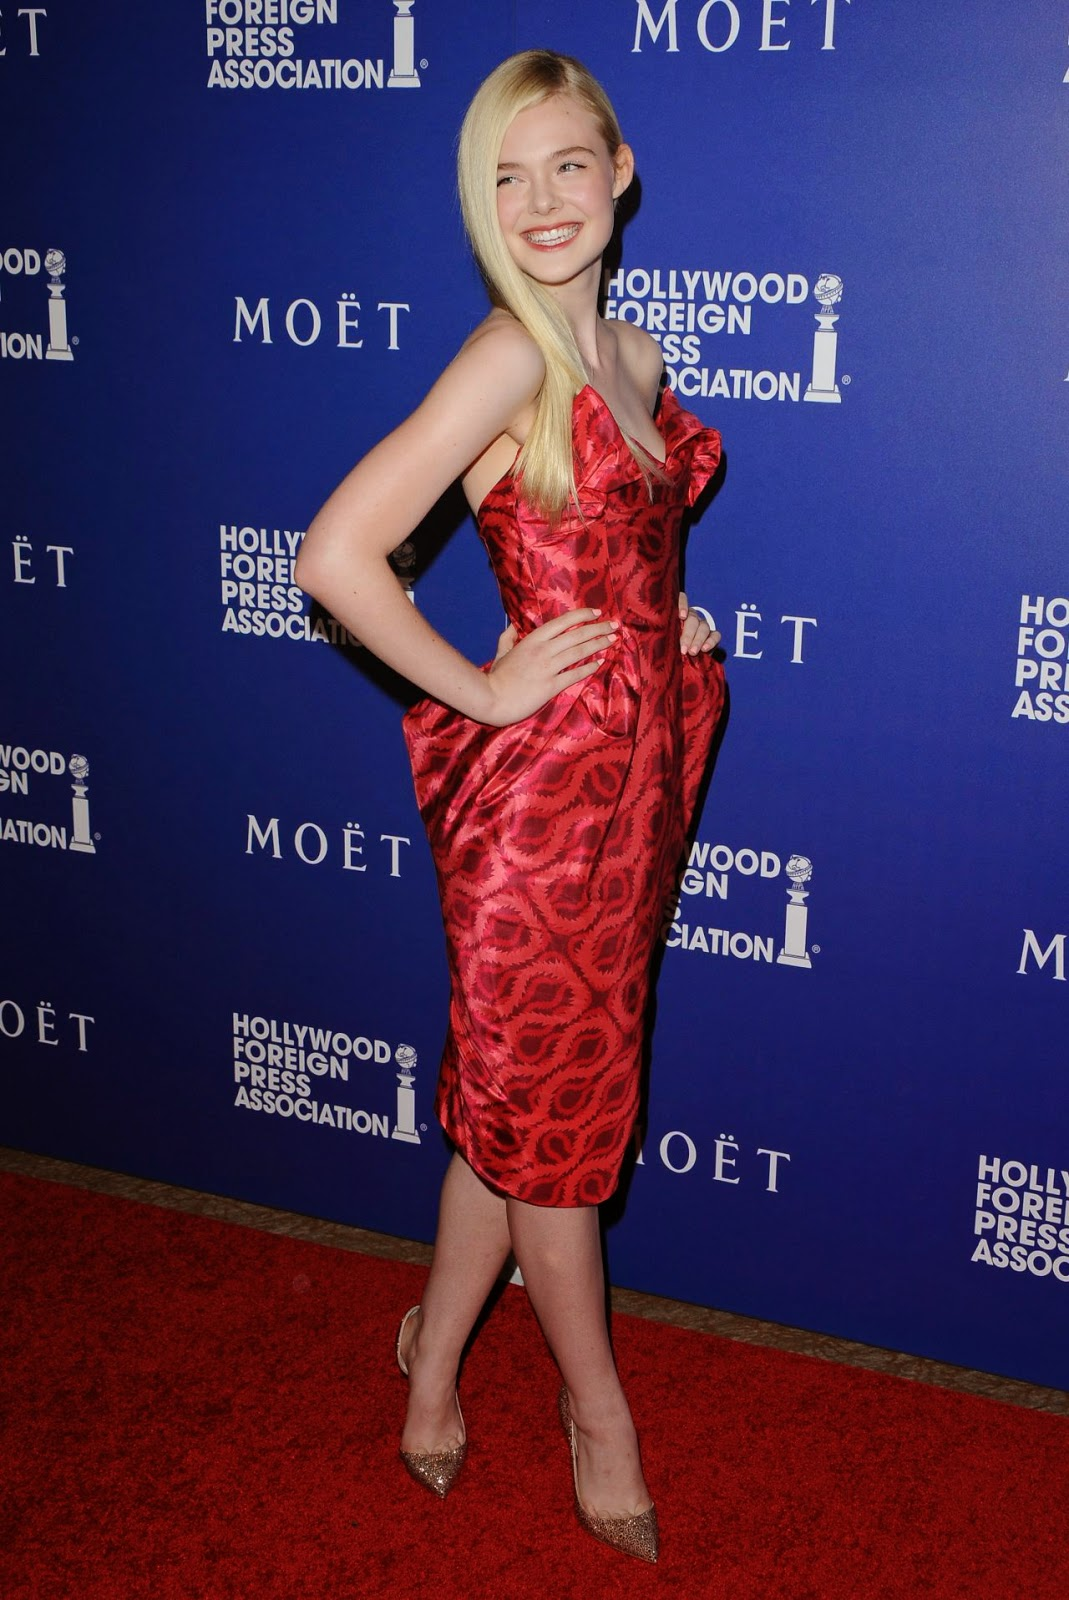 Elle Fanning is gorgeous in Vivienne Westwood at the 2014 Hollywood Foreign Press Association's Grants Banquet